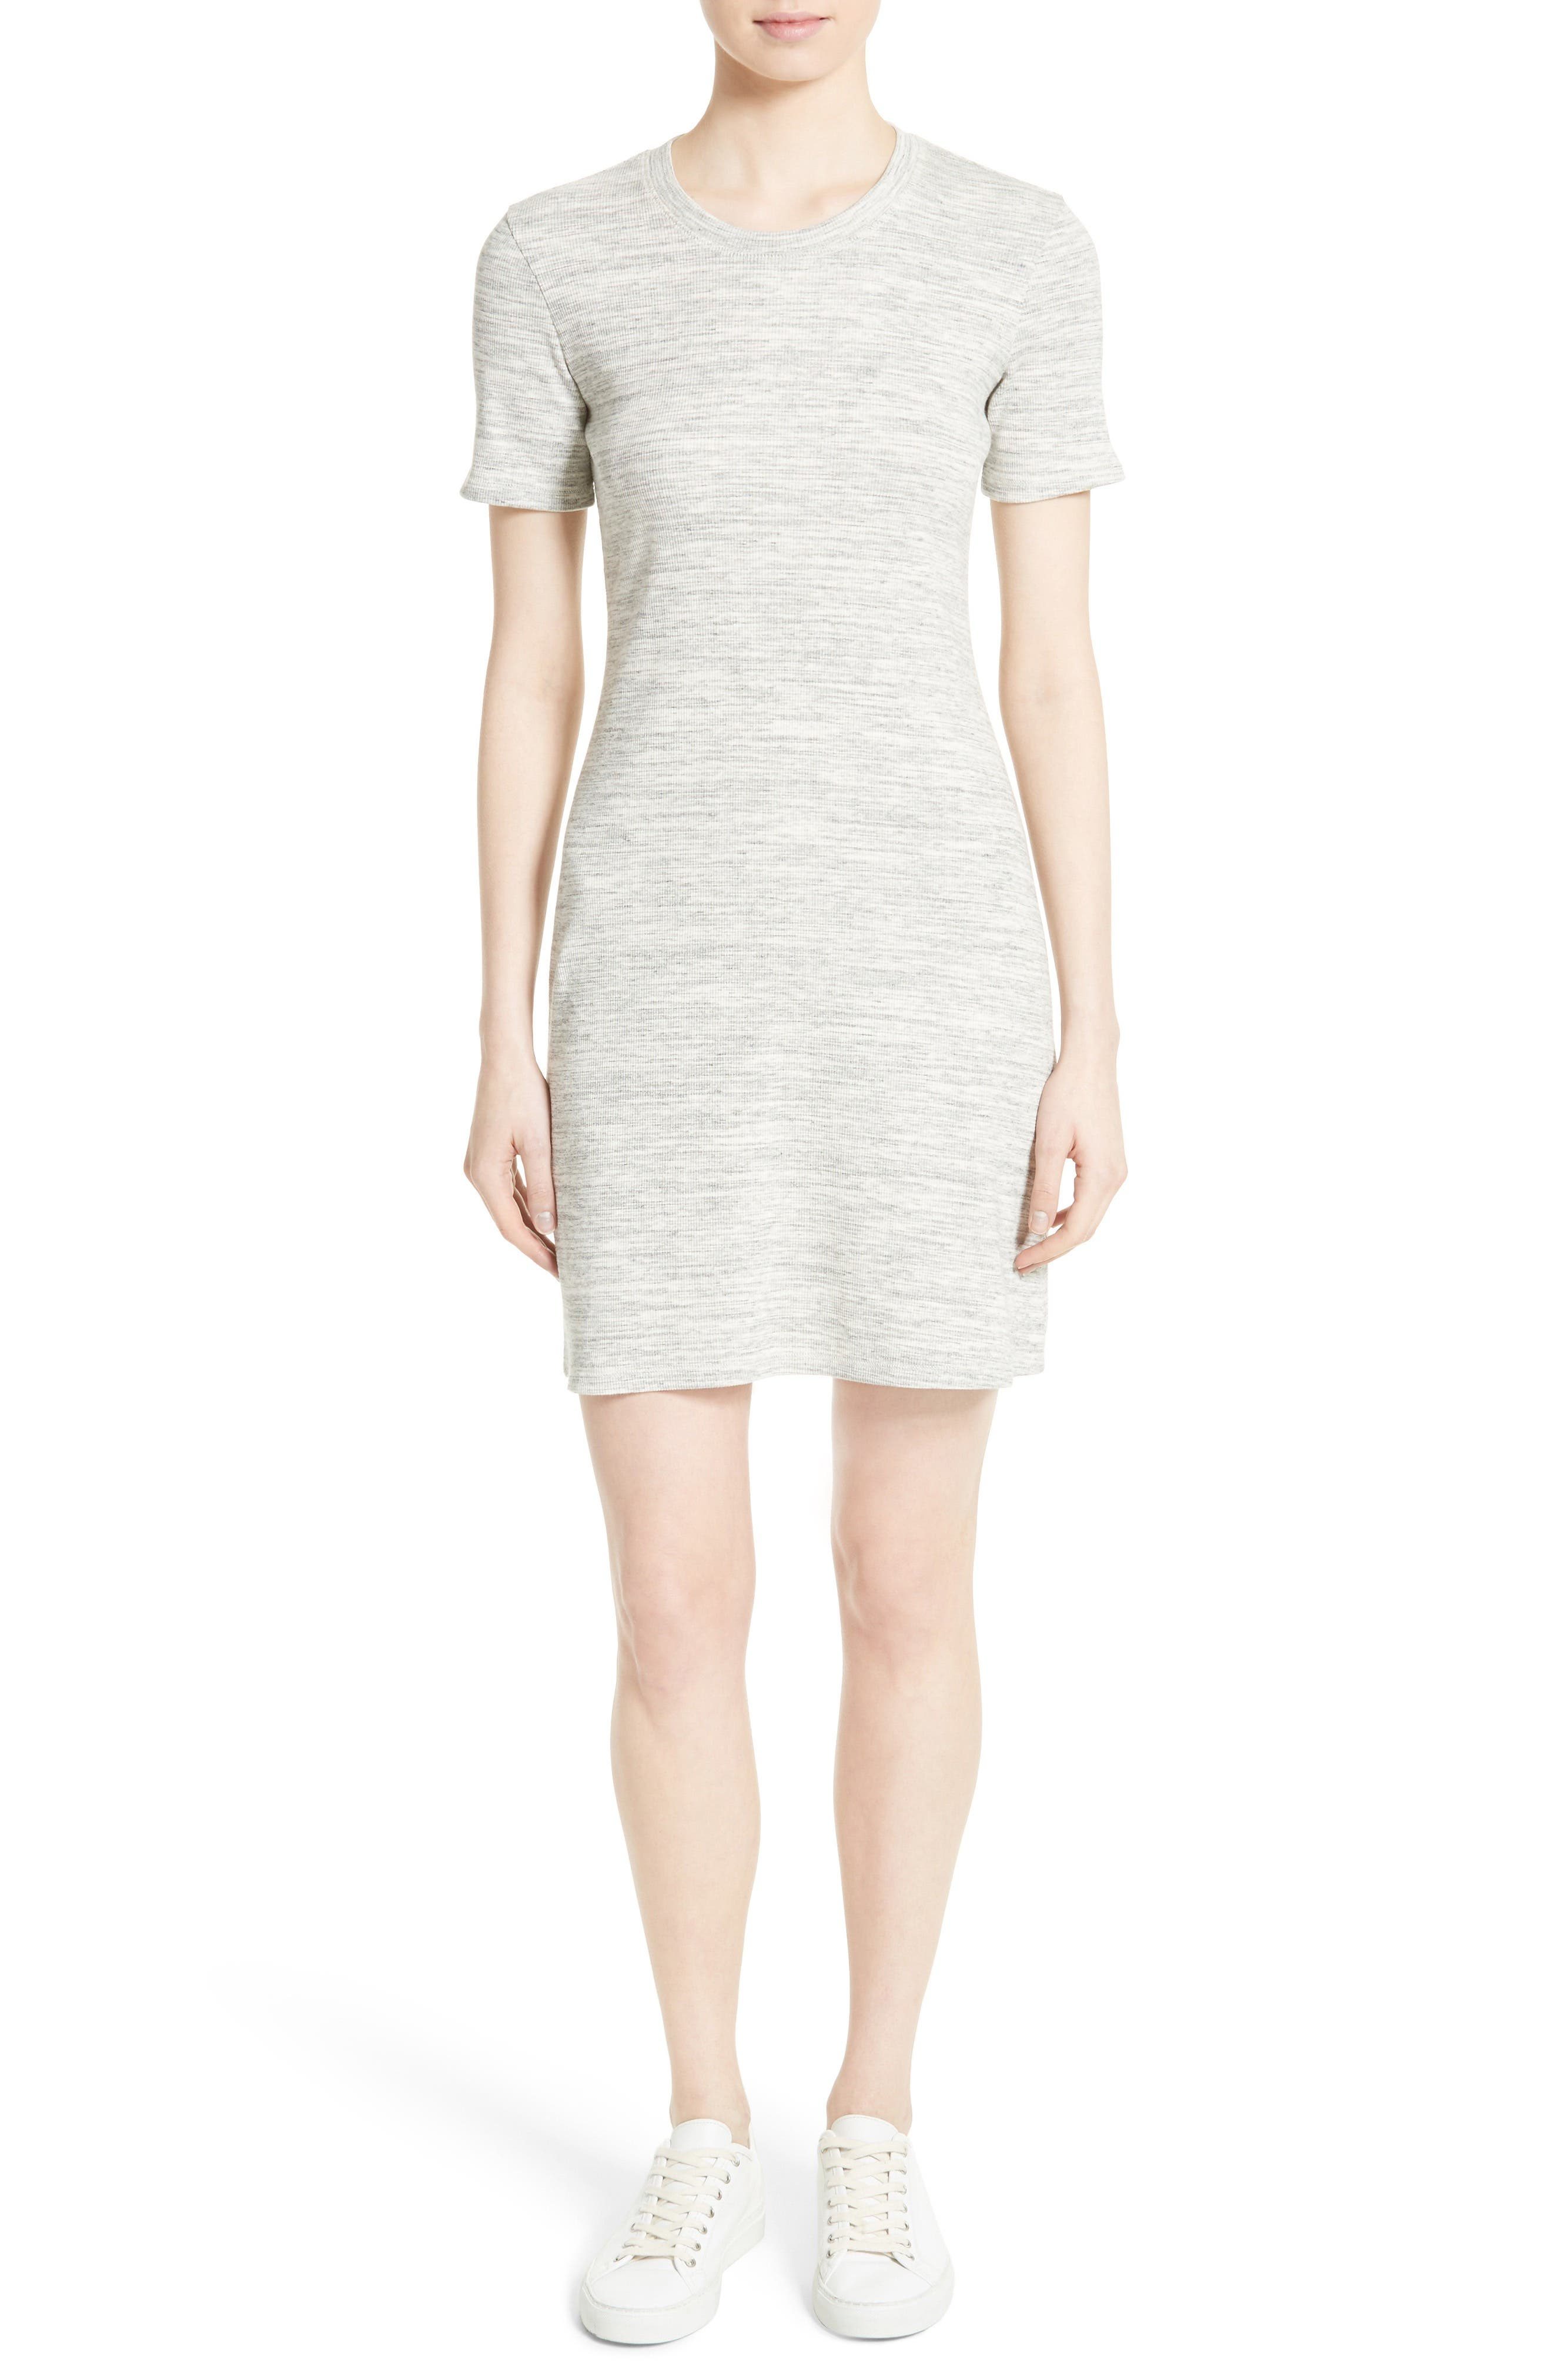 Theory Cherry B3 Sterling Rib Knit T-Shirt Dress